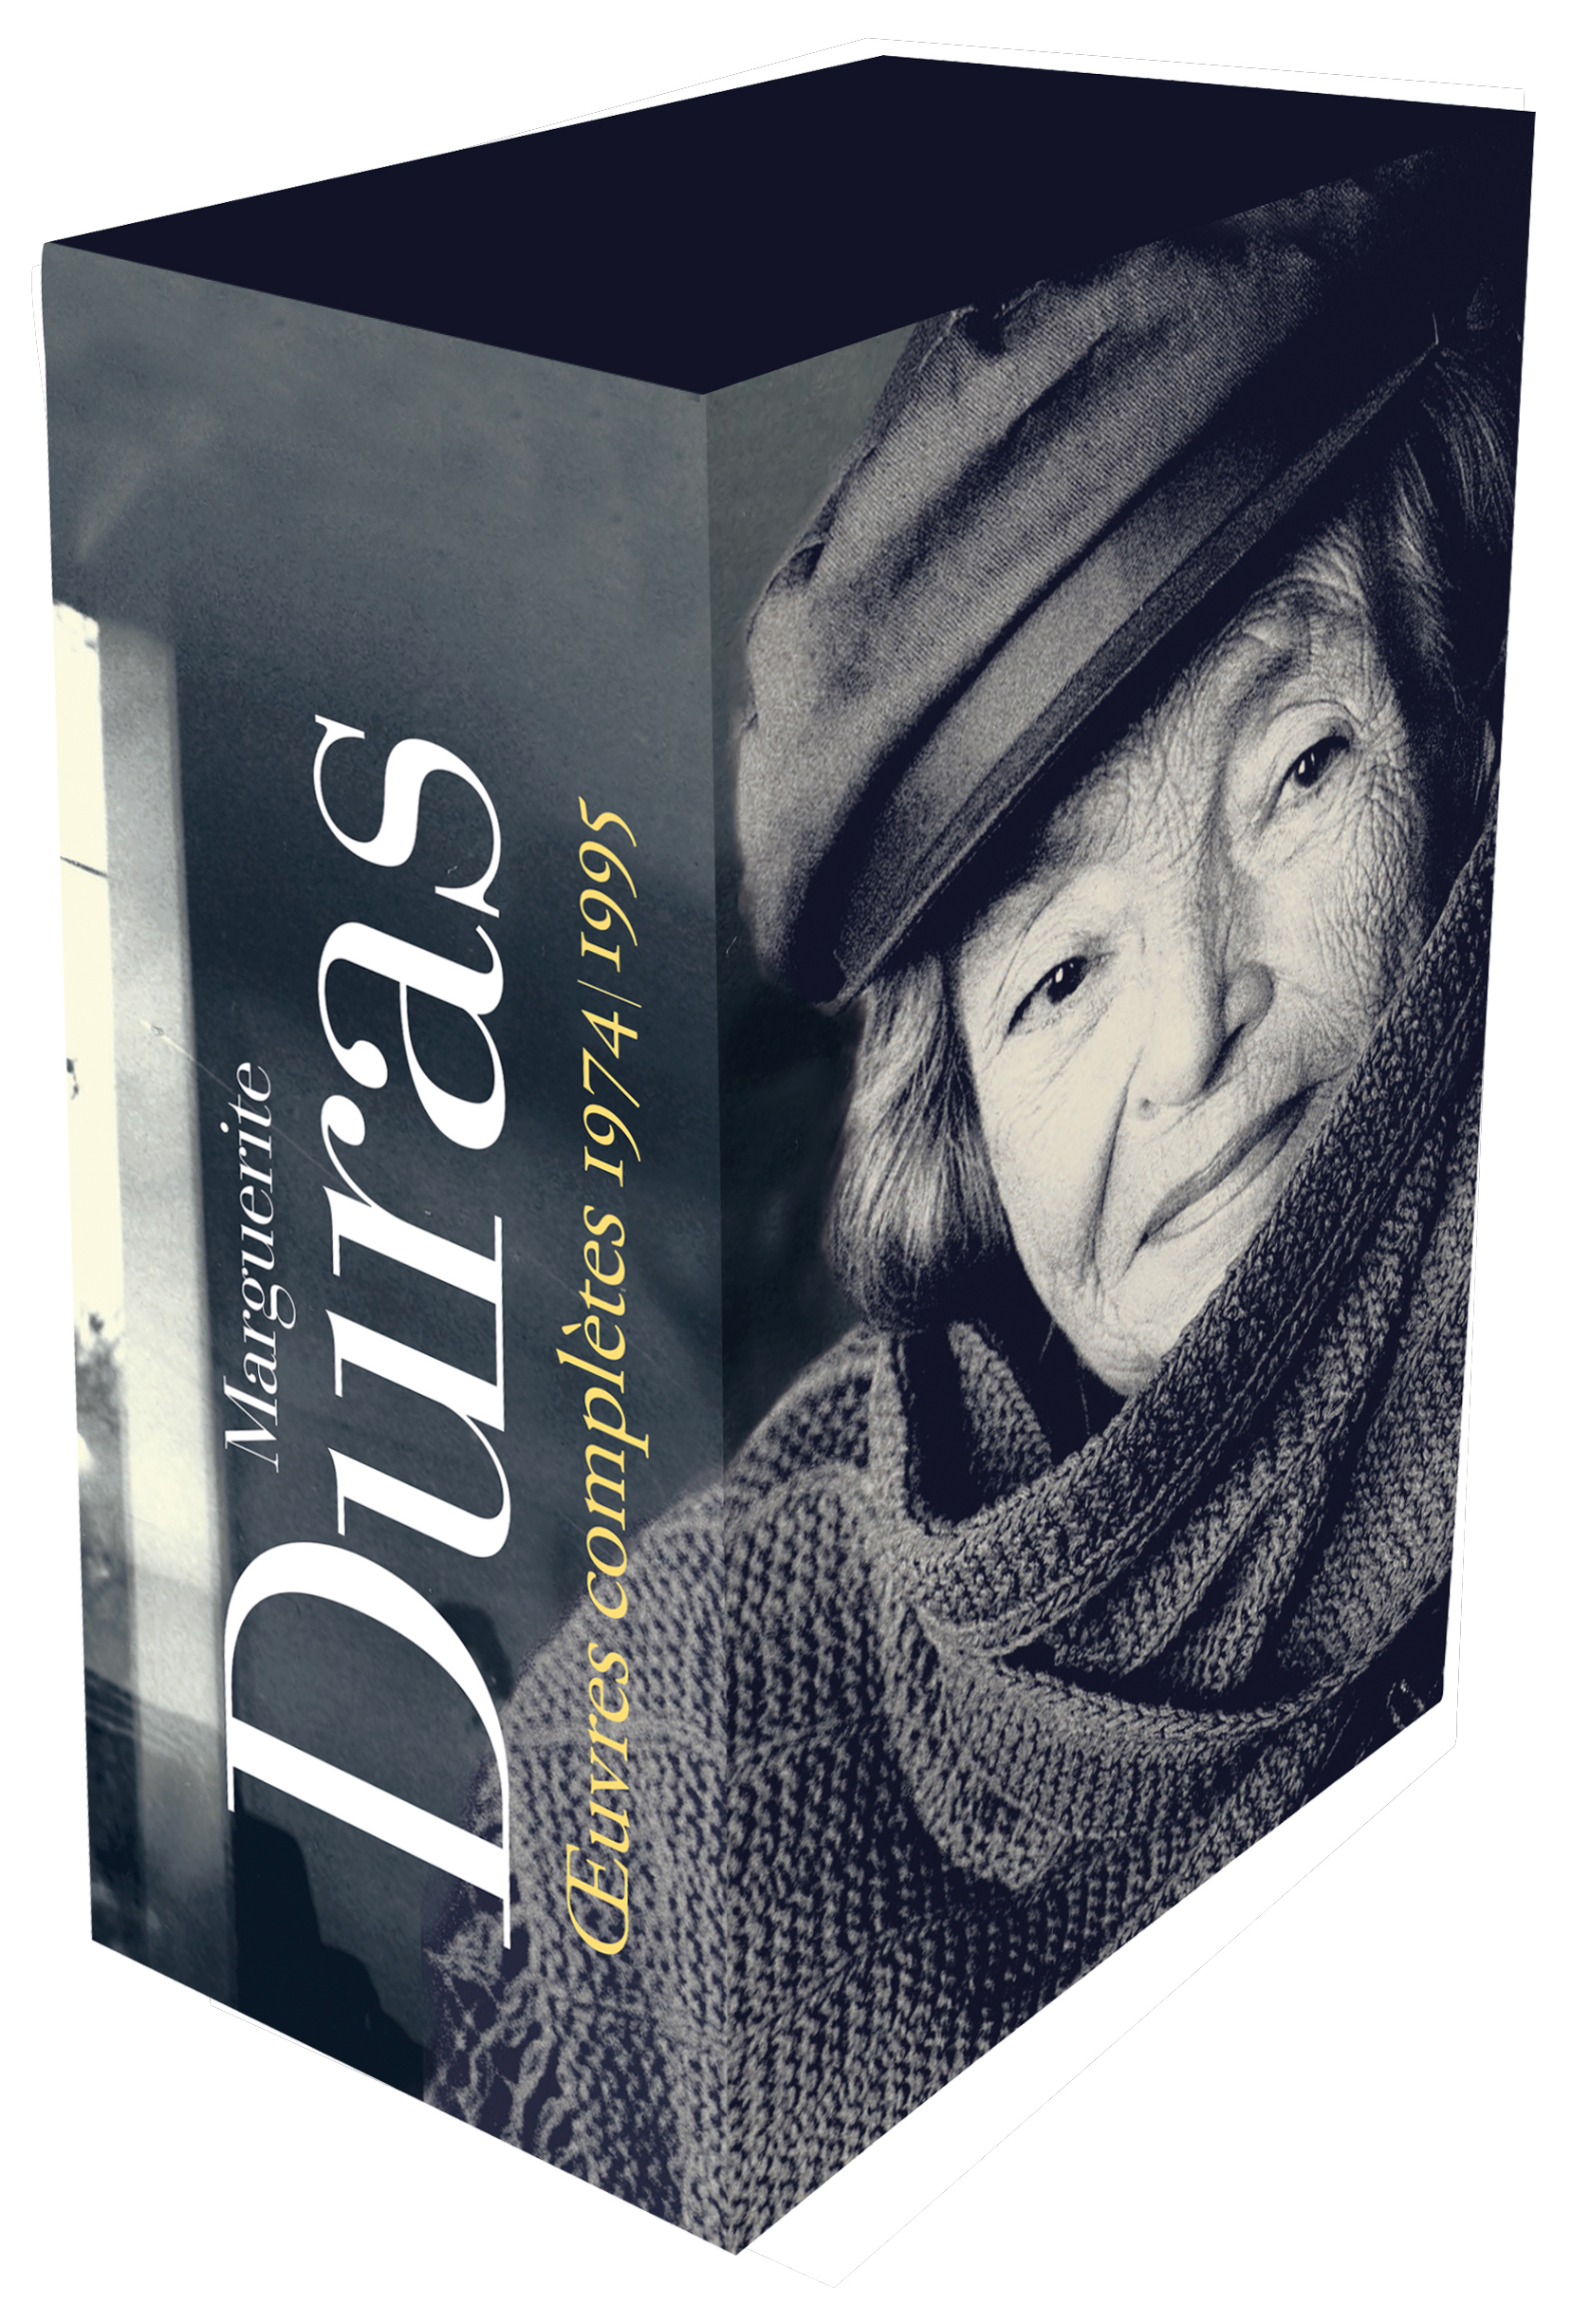 DURAS COFFRET OEUVRES COMPLETES T3 + T4 2V